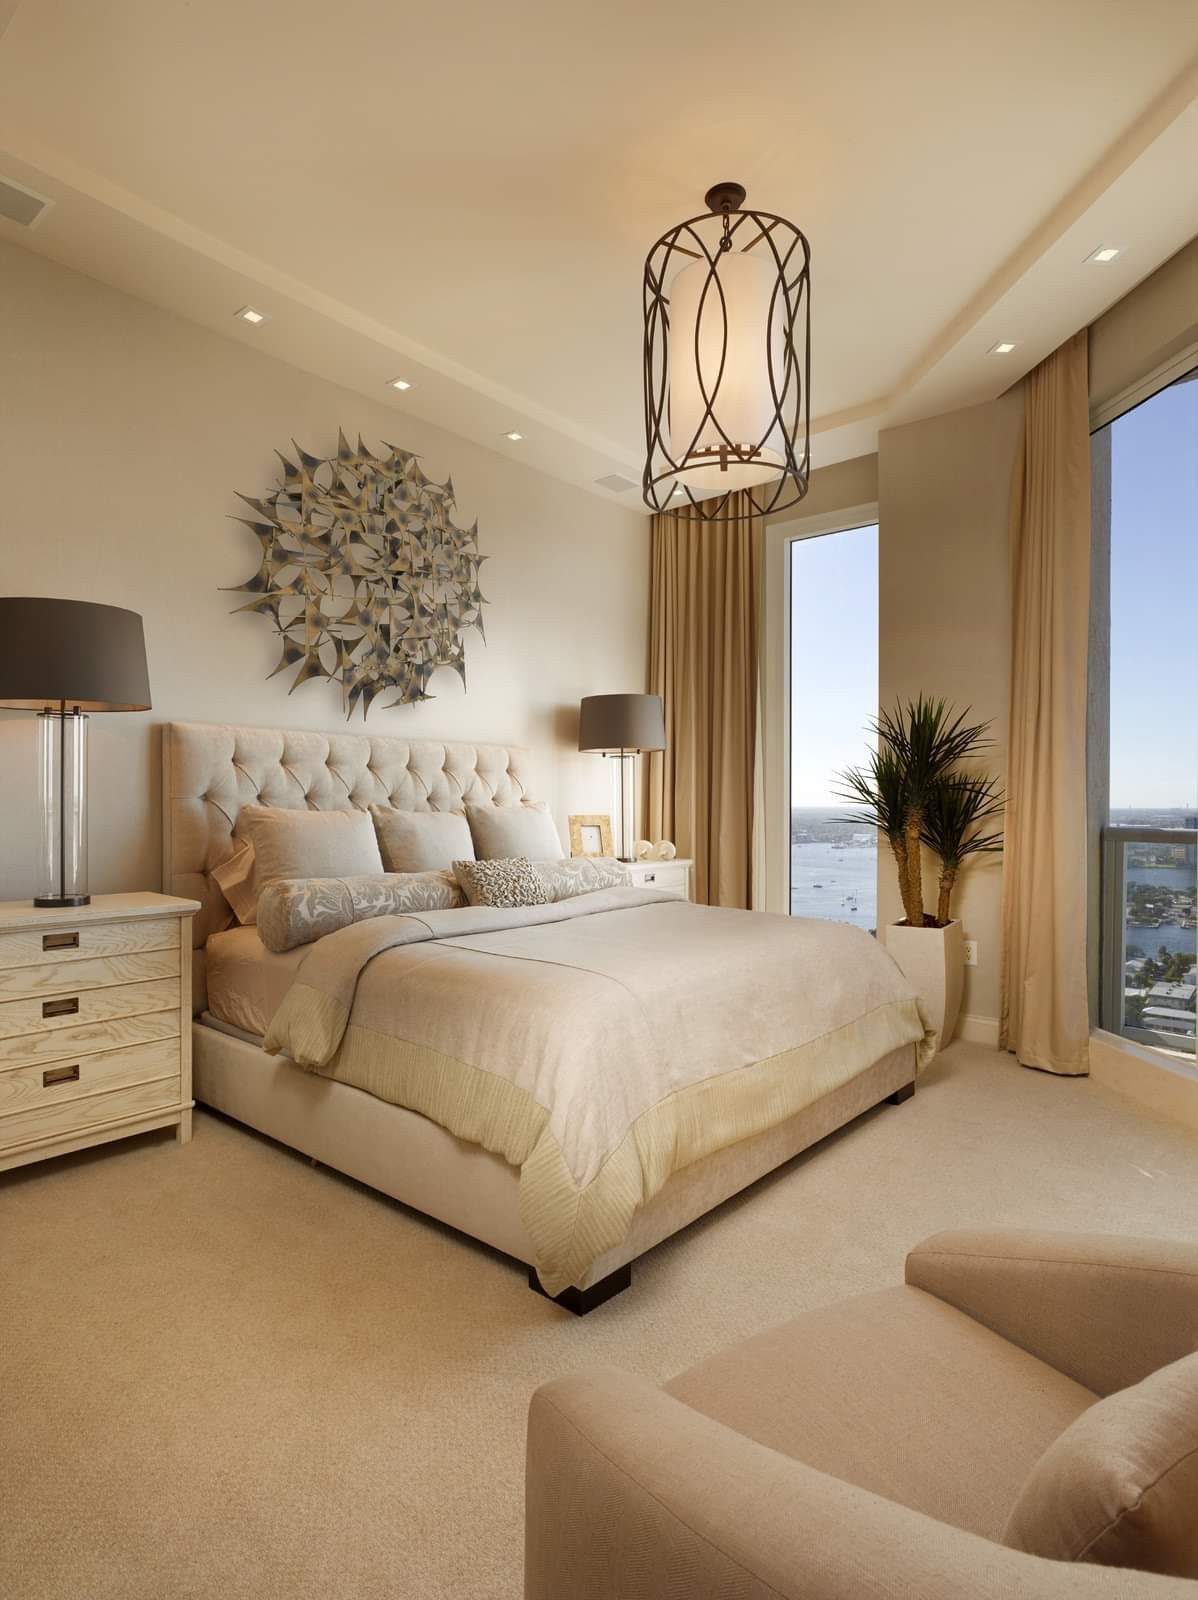 Bedroom ideas (With images) | Relaxing master bedroom ...